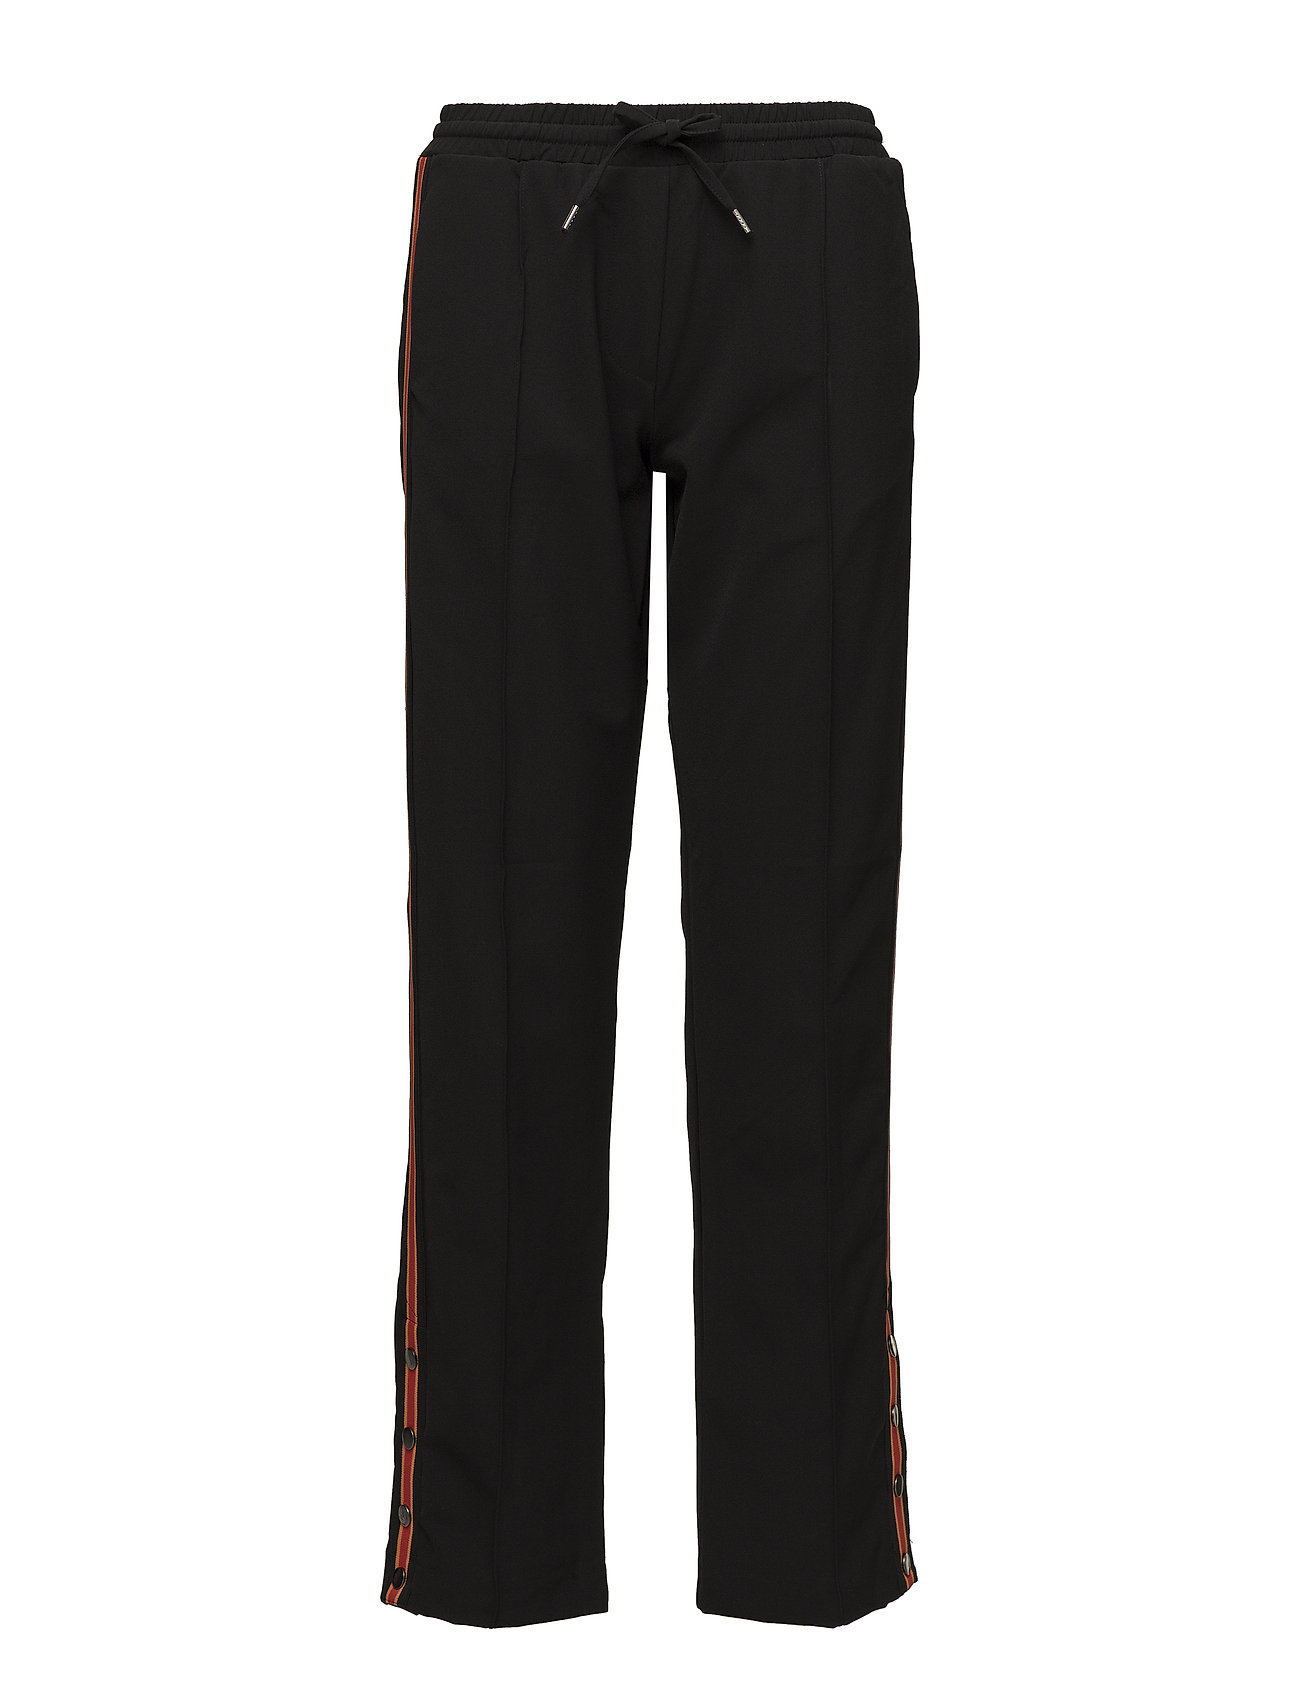 2nd One Gigi 813 Pants - BLACK TRACK